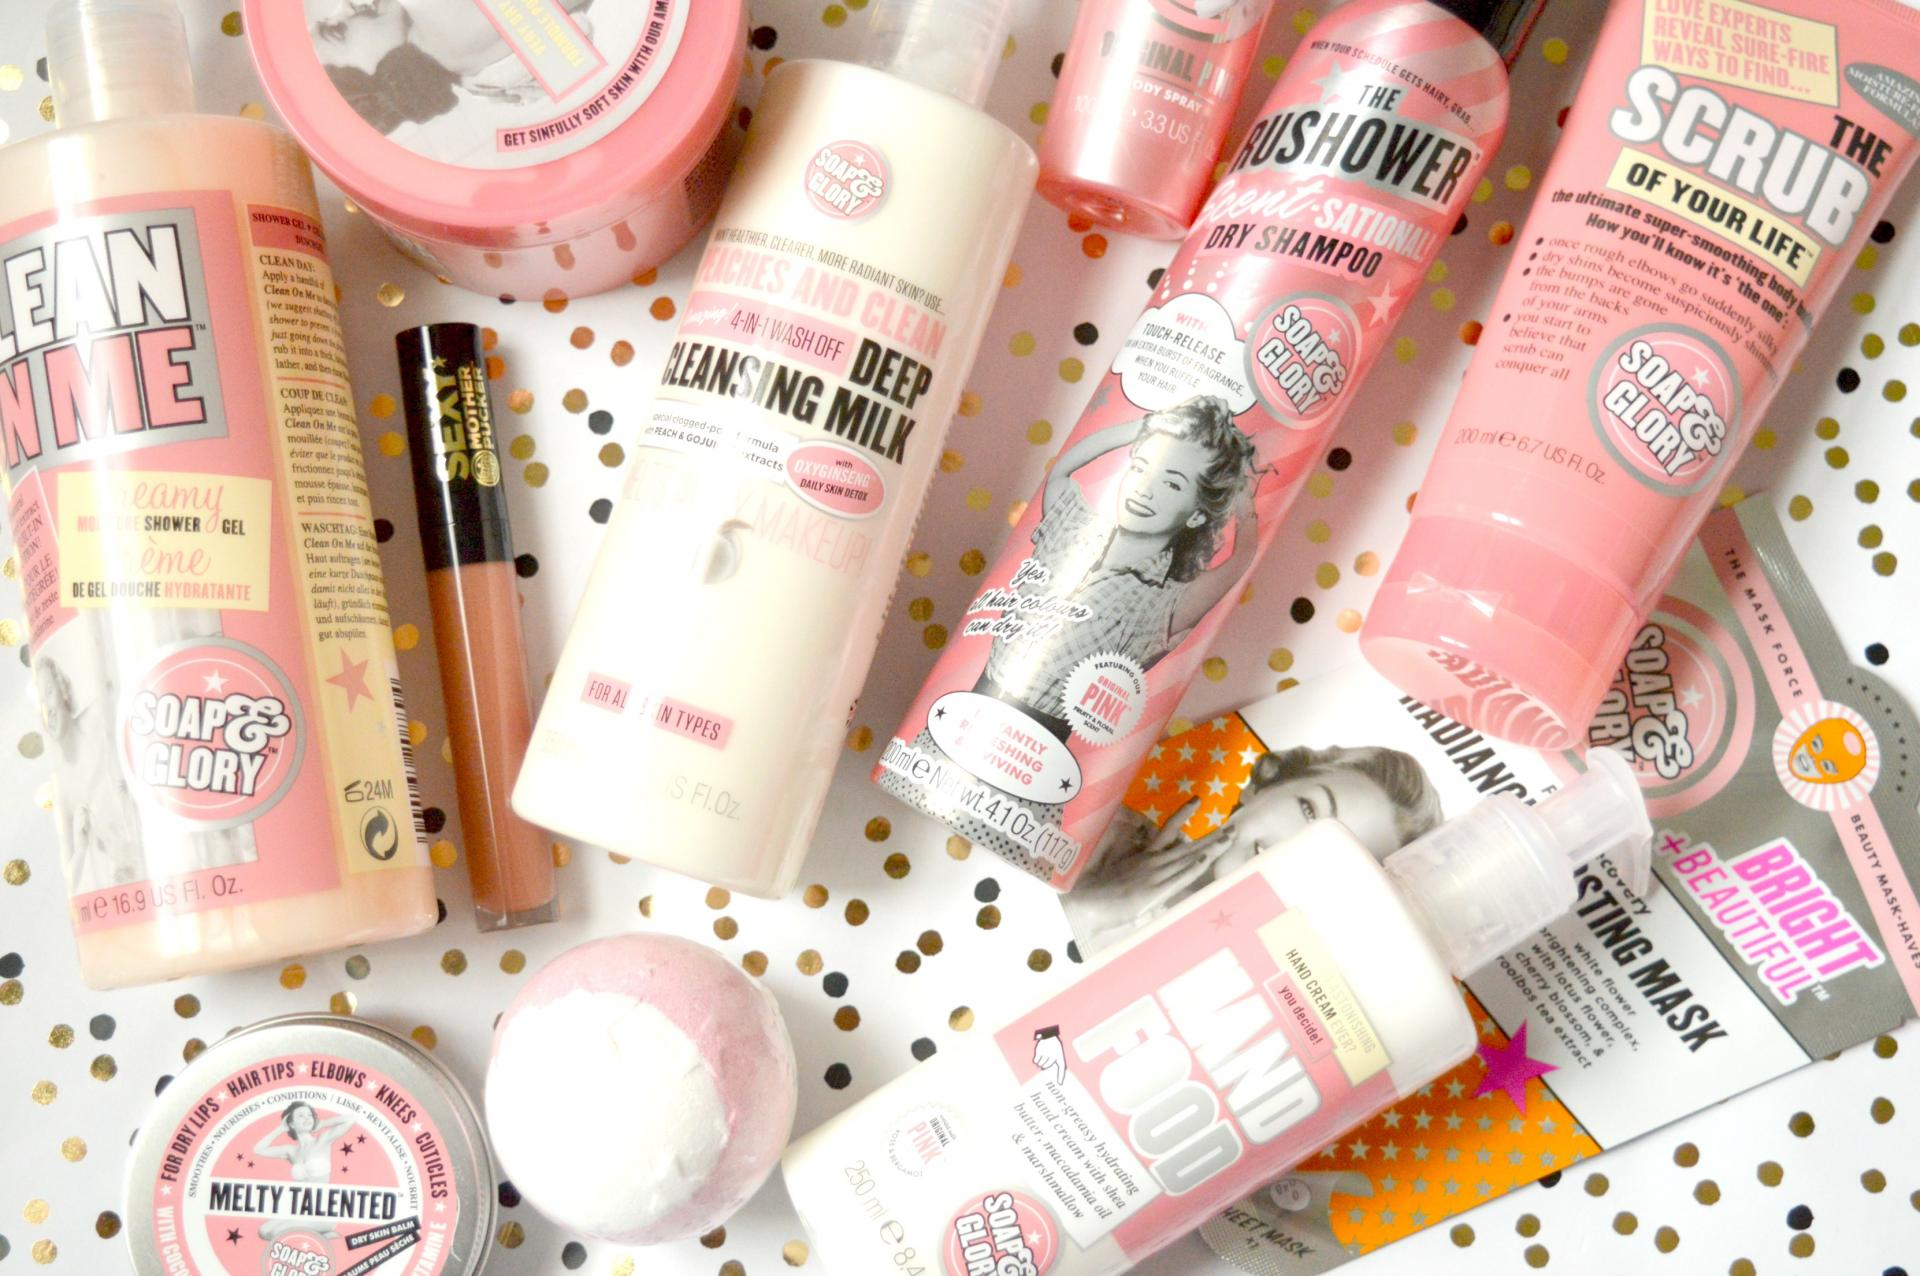 Soap and Glory Bubble Act Gift Set